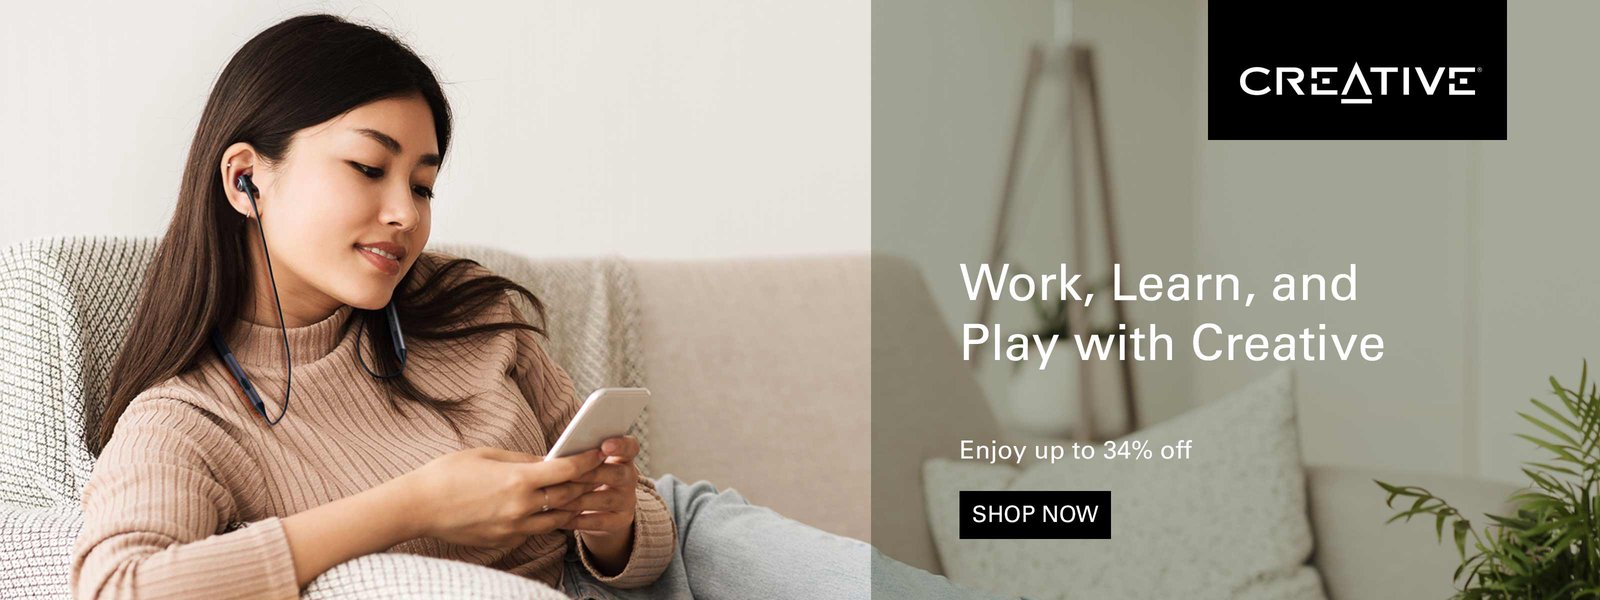 Work, Learn & Play with Creative - Enjoy up to 34% off!